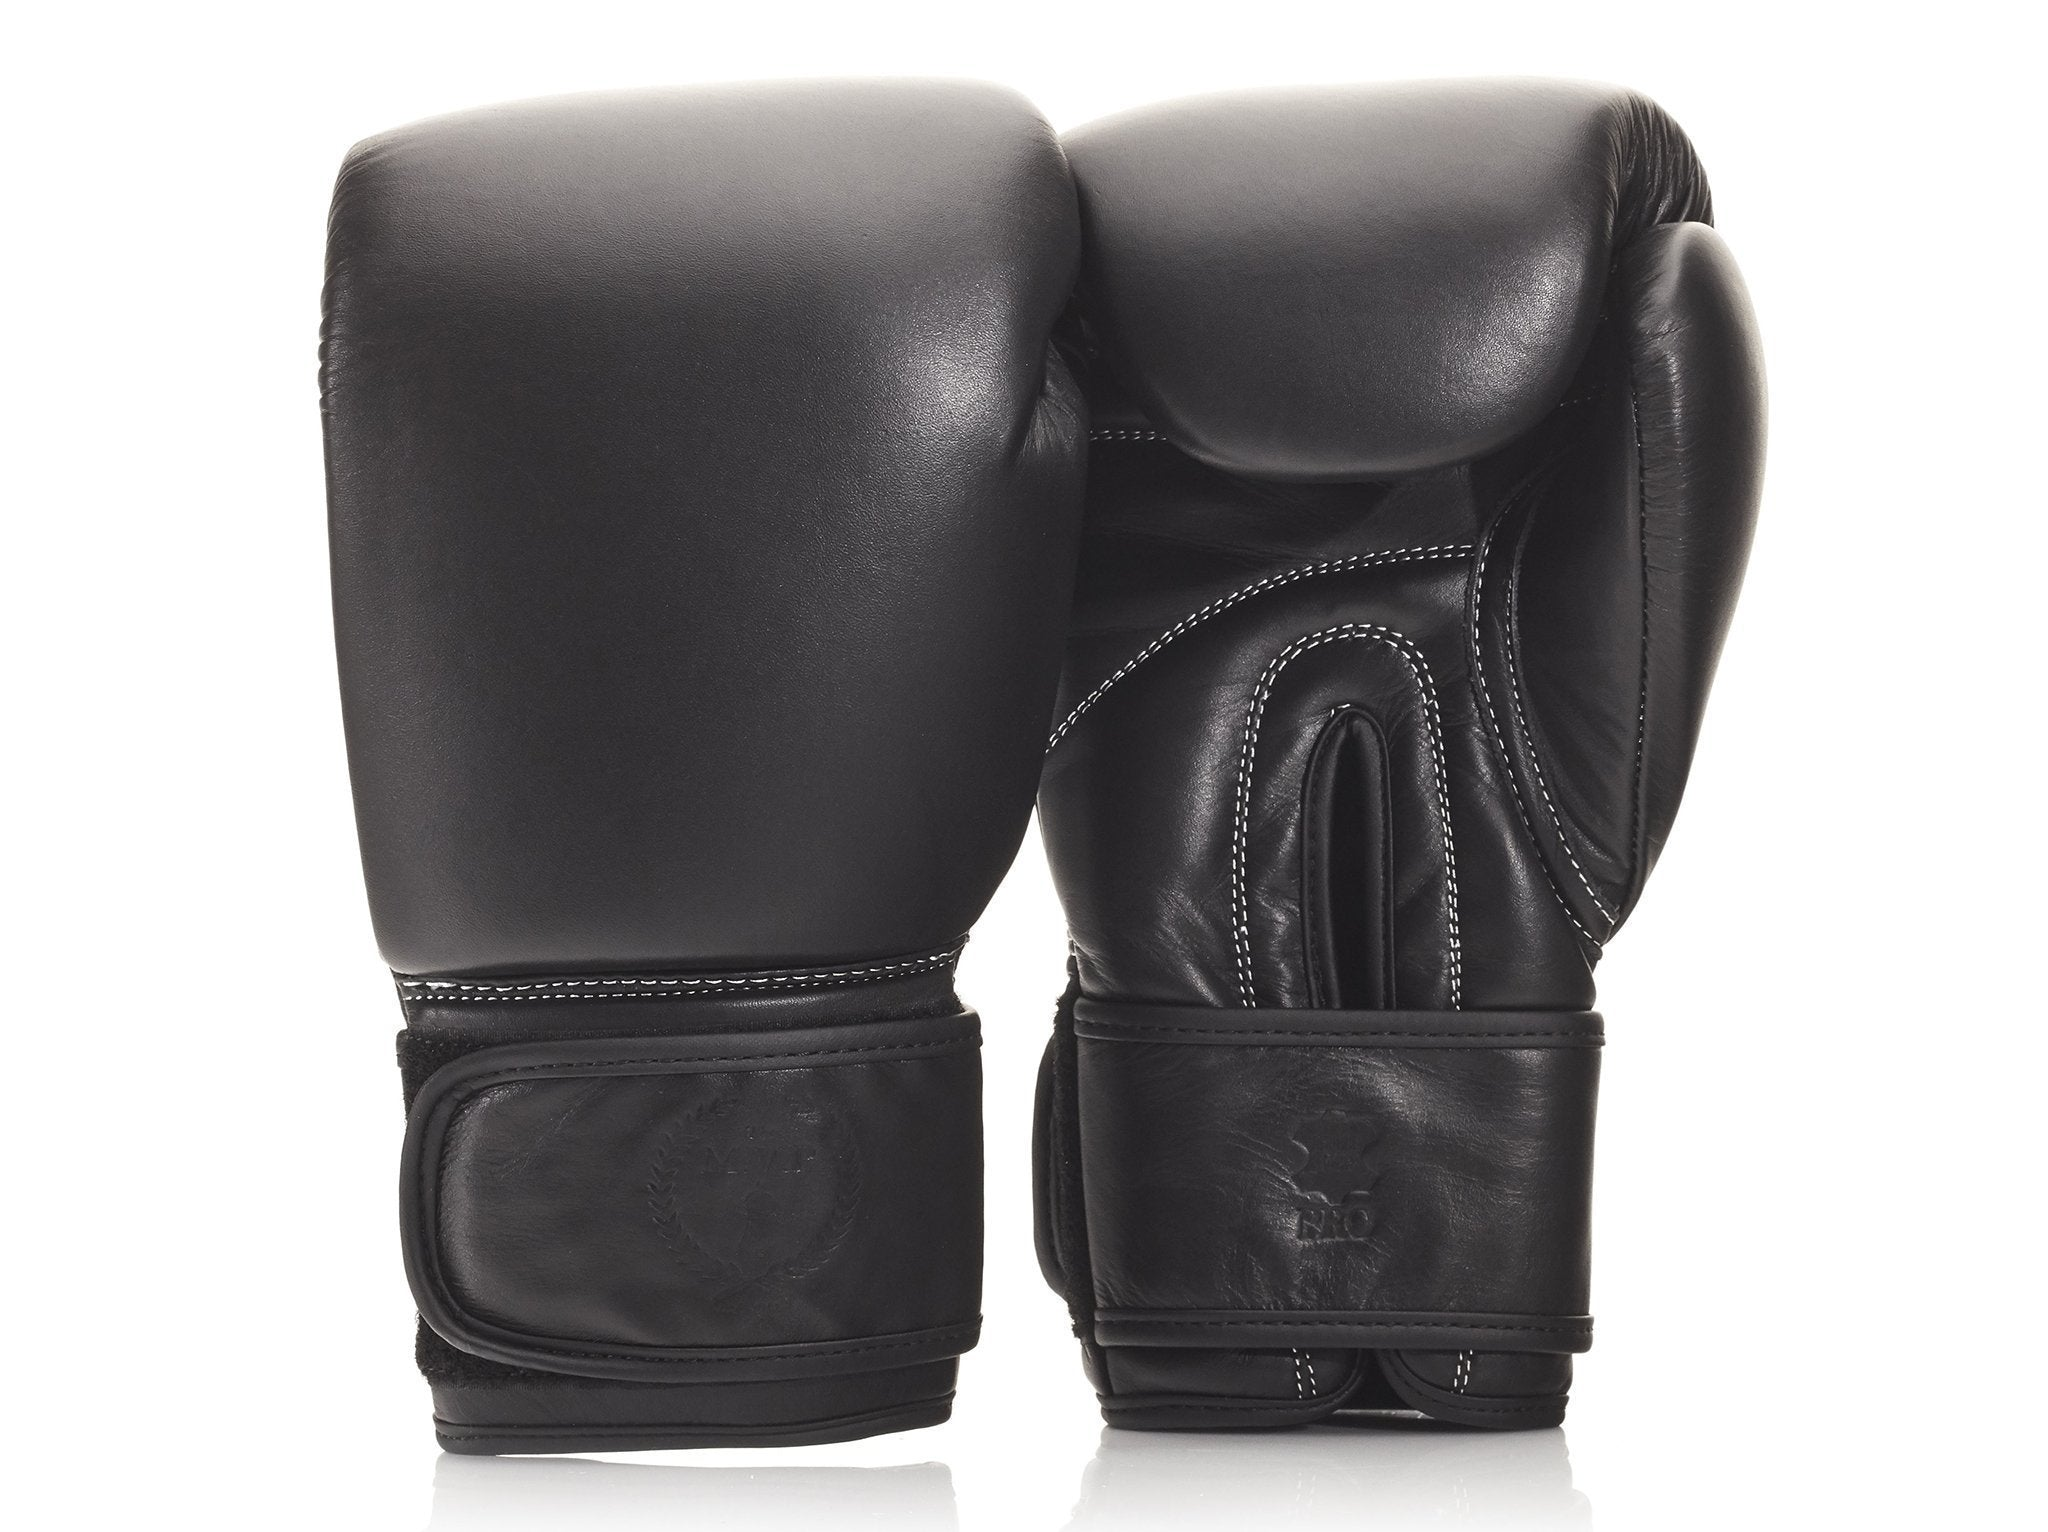 ef411bb24 PRO Executive Black Leather Boxing Gloves (Strap Up) -